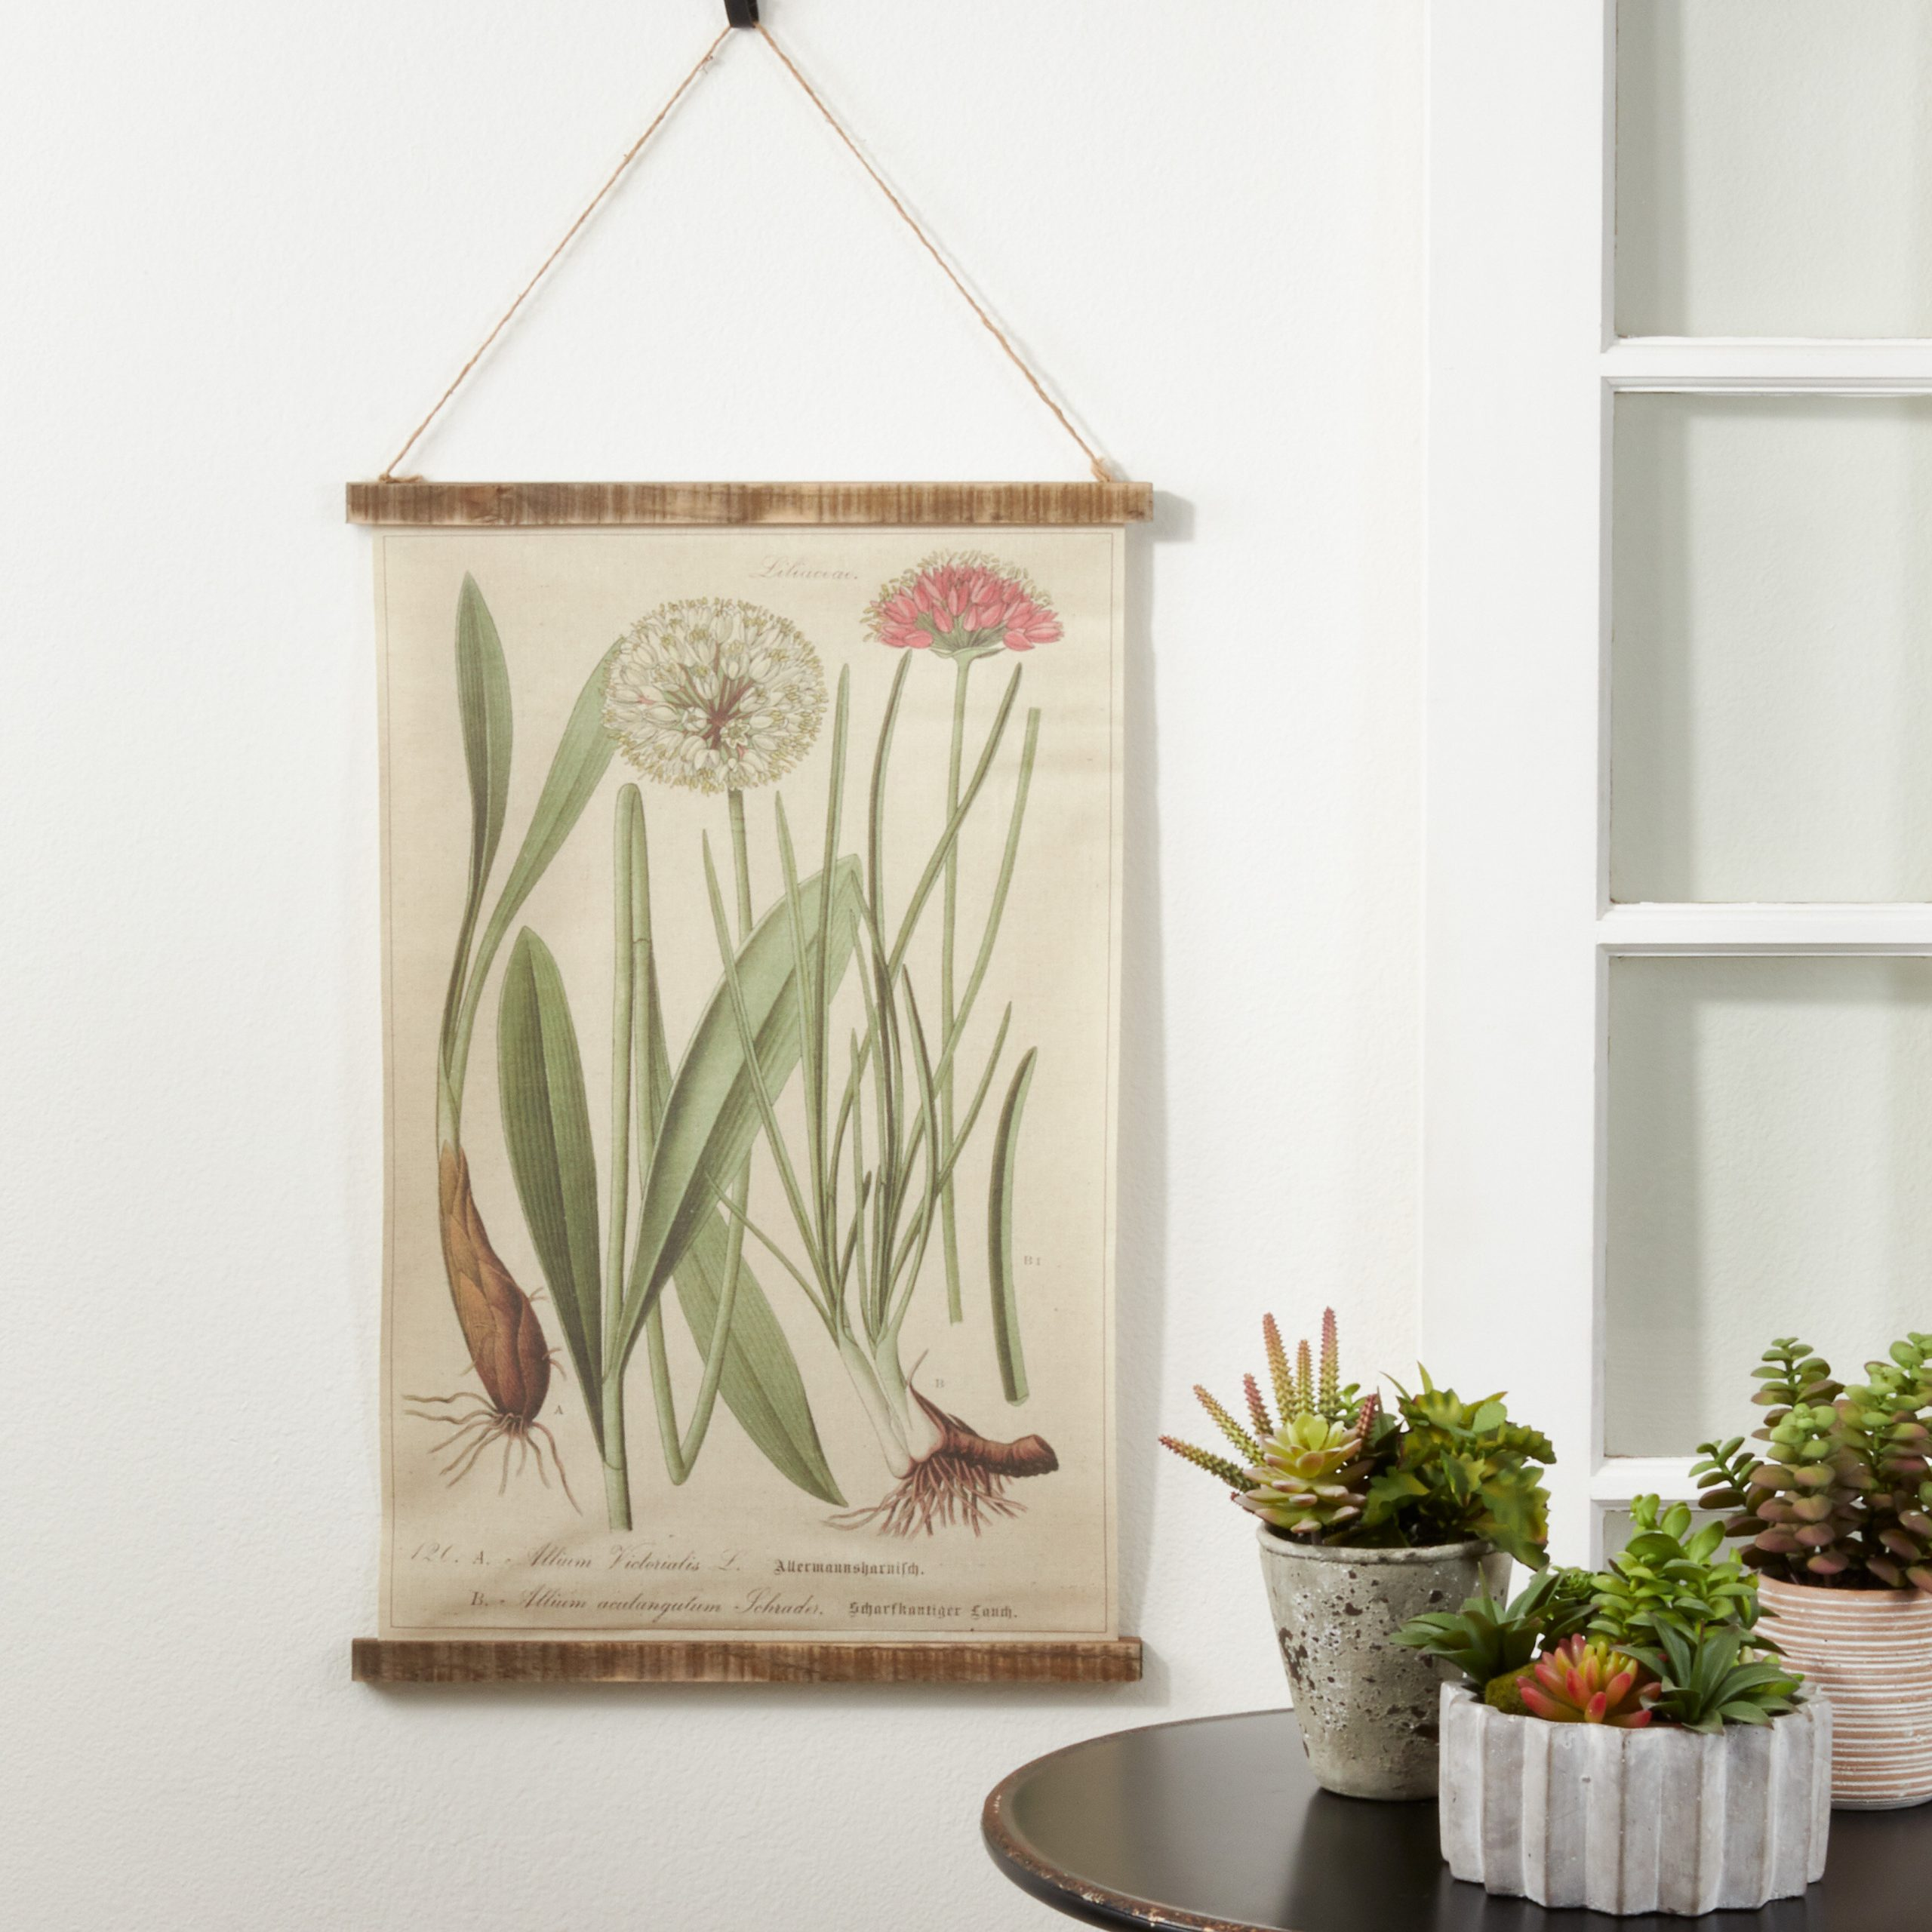 Linen Botanical Design With Rod Included With Regard To Most Recent Blended Fabric Clancy Wool And Cotton Wall Hangings With Hanging Accessories Included (View 17 of 20)